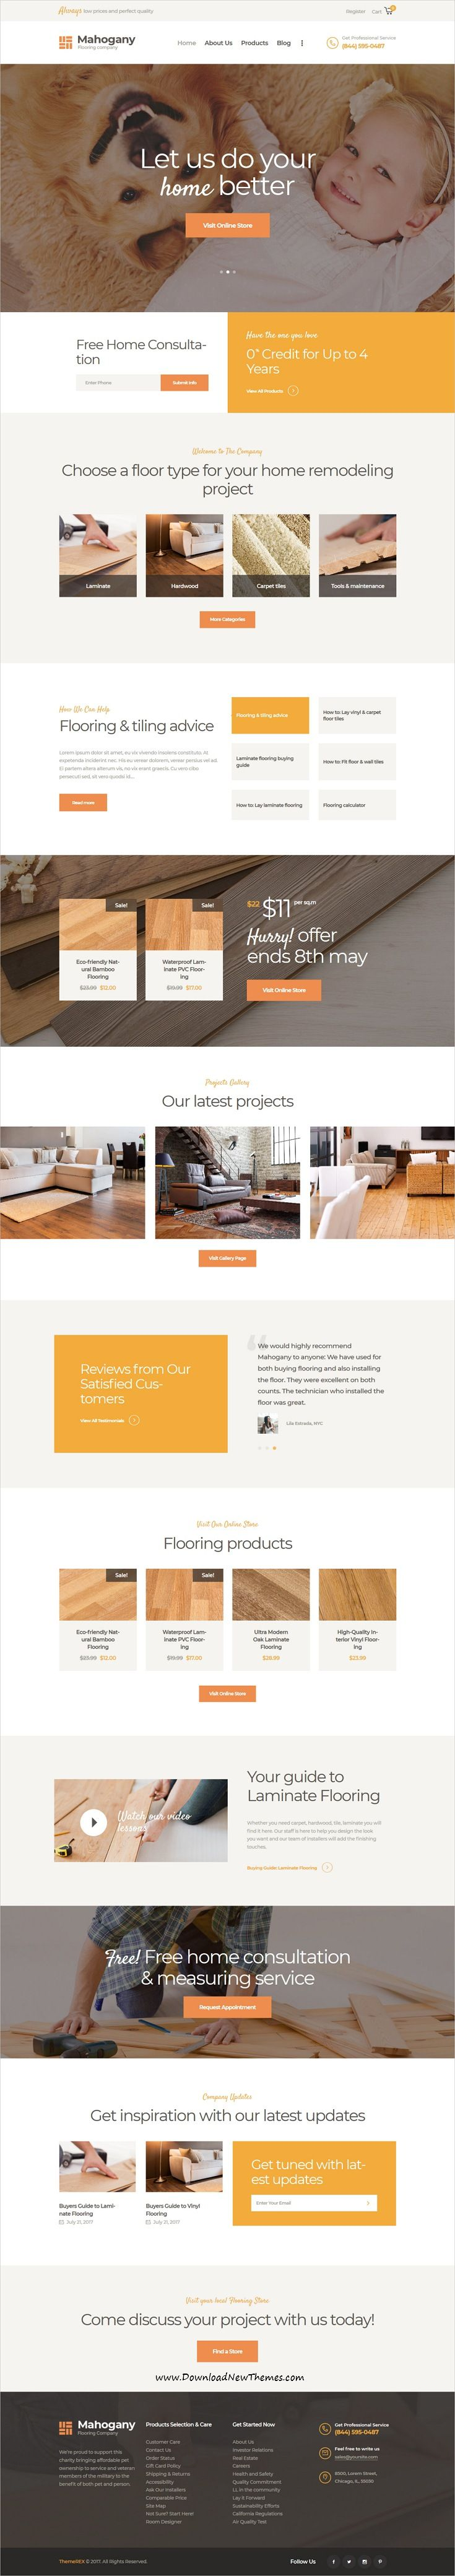 Mahogany is clean and modern design 3in1 responsive WordPress theme